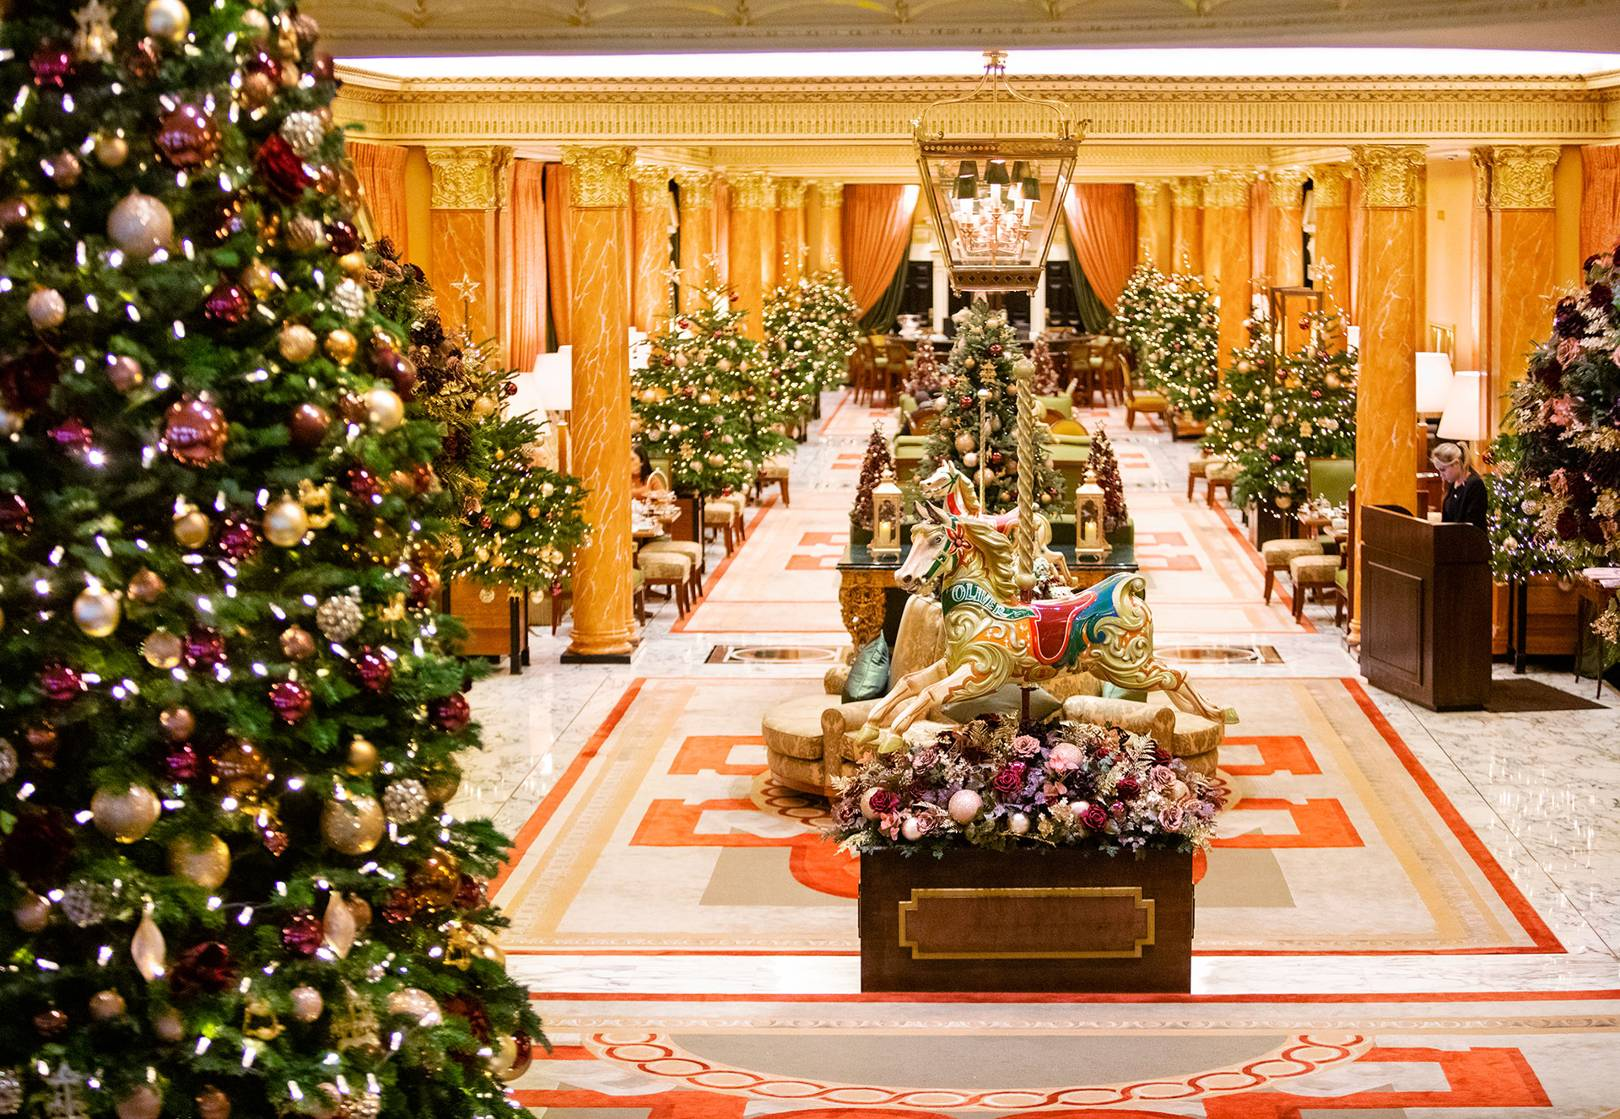 The Dorchester Mary Poppins Christmas Decorations Behind The Scenes